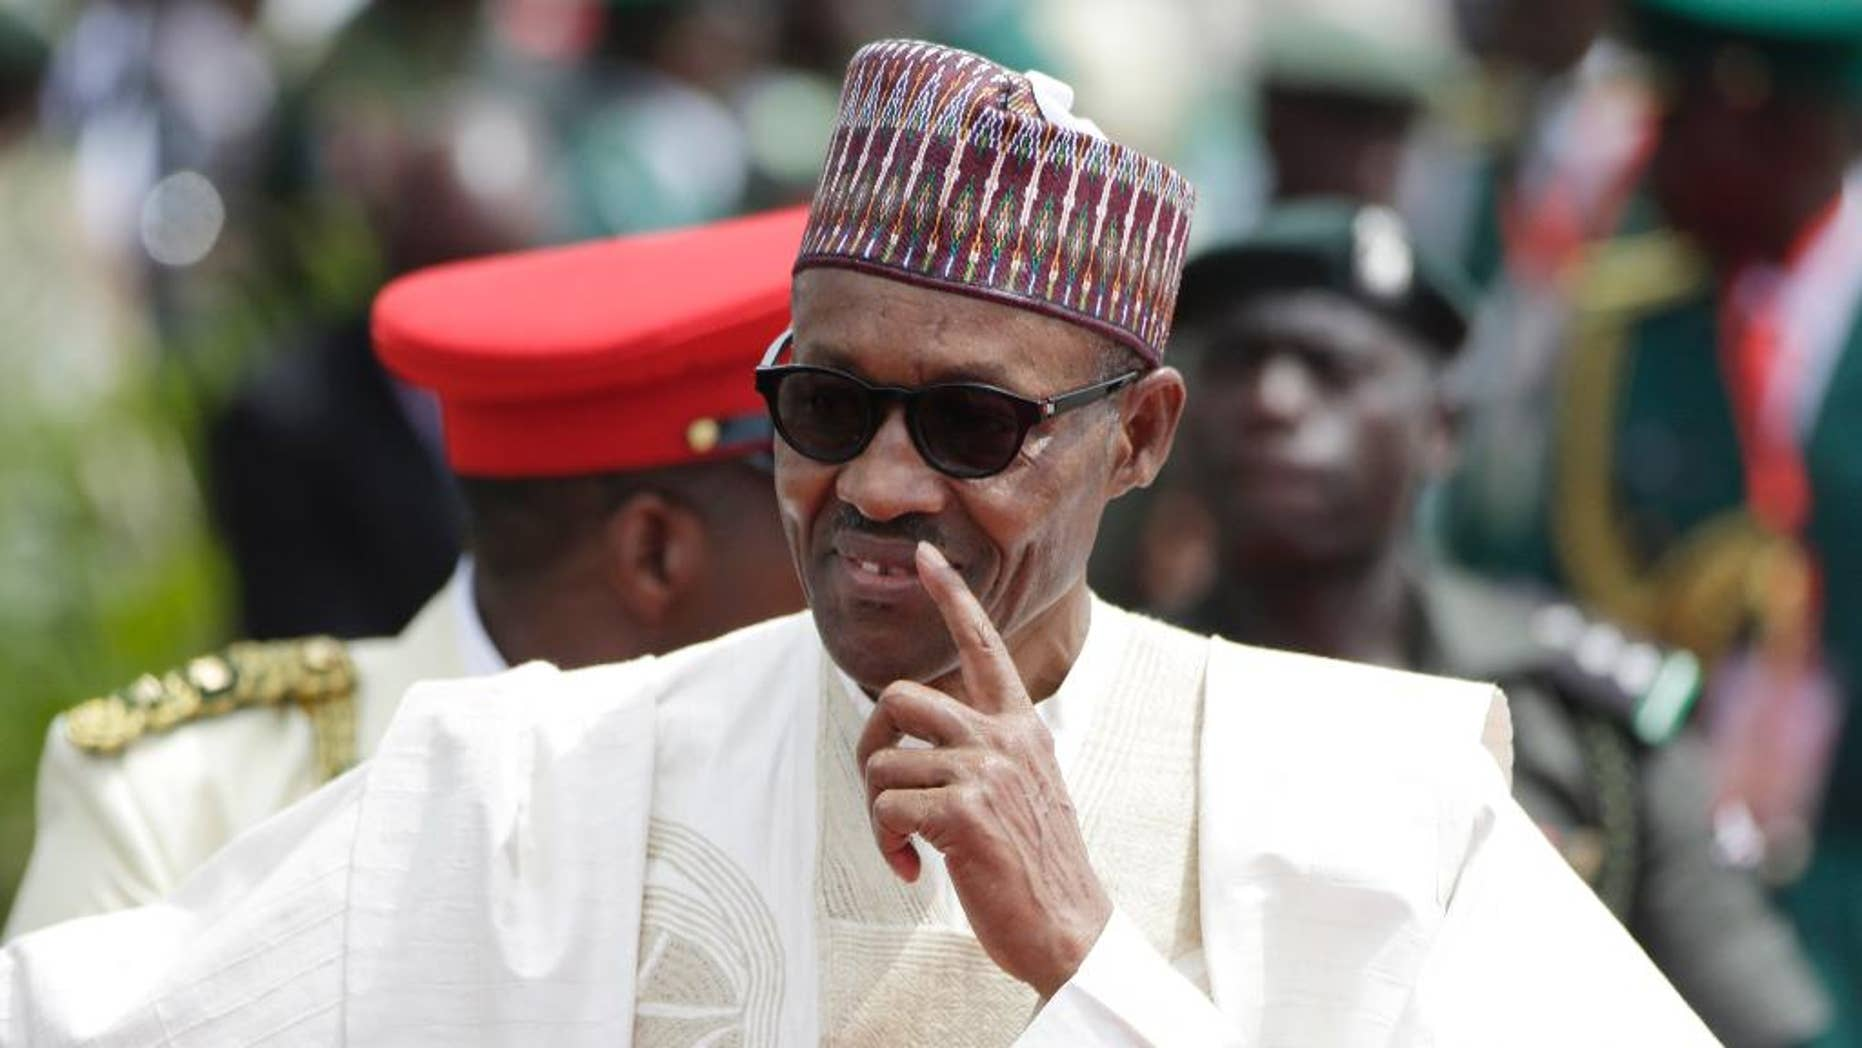 FILE- In this file photo taken Friday, May 29, 2015, former General and Nigerian President, Muhammadu Buhari, arrives for his Inauguration at the eagle square in Abuja, Nigeria. Nigeria's new President Muhammadu Buhari makes his first official visit to one-time enemy Cameroon on Wednesday, July 29, 2015 to ease tensions and bolster support for a regional army to fight the Boko Haram Islamic uprising that is spilling across borders, his spokesman and Cameroon's defense minister said. (AP Photo/Sunday Alamba, File)